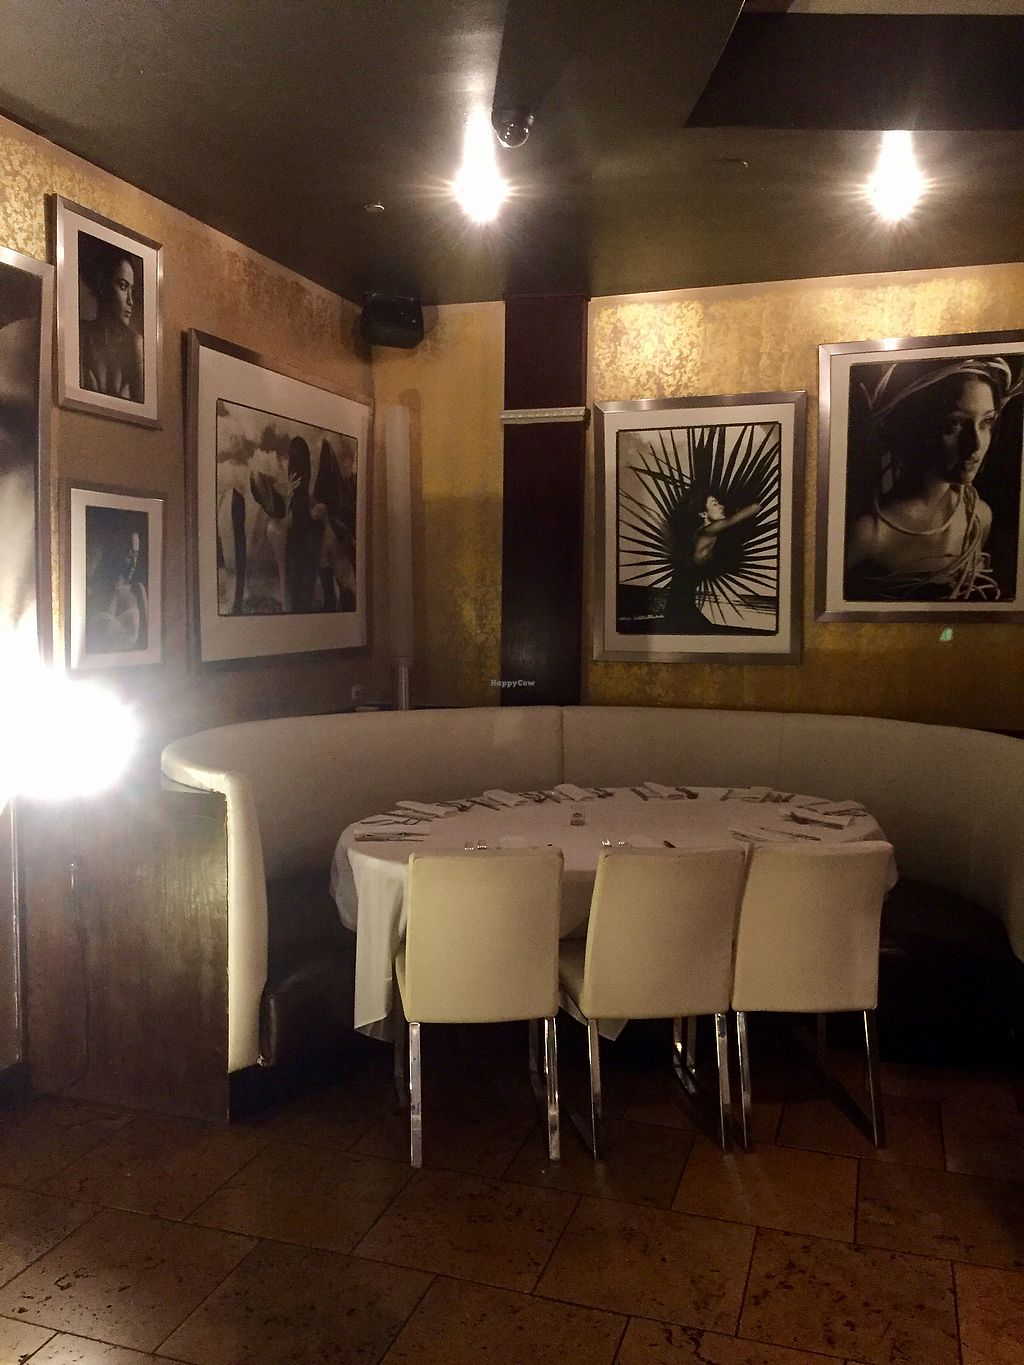 """Photo of Vermilion  by <a href=""""/members/profile/happycowgirl"""">happycowgirl</a> <br/>beautiful dining room <br/> October 16, 2017  - <a href='/contact/abuse/image/33435/315848'>Report</a>"""